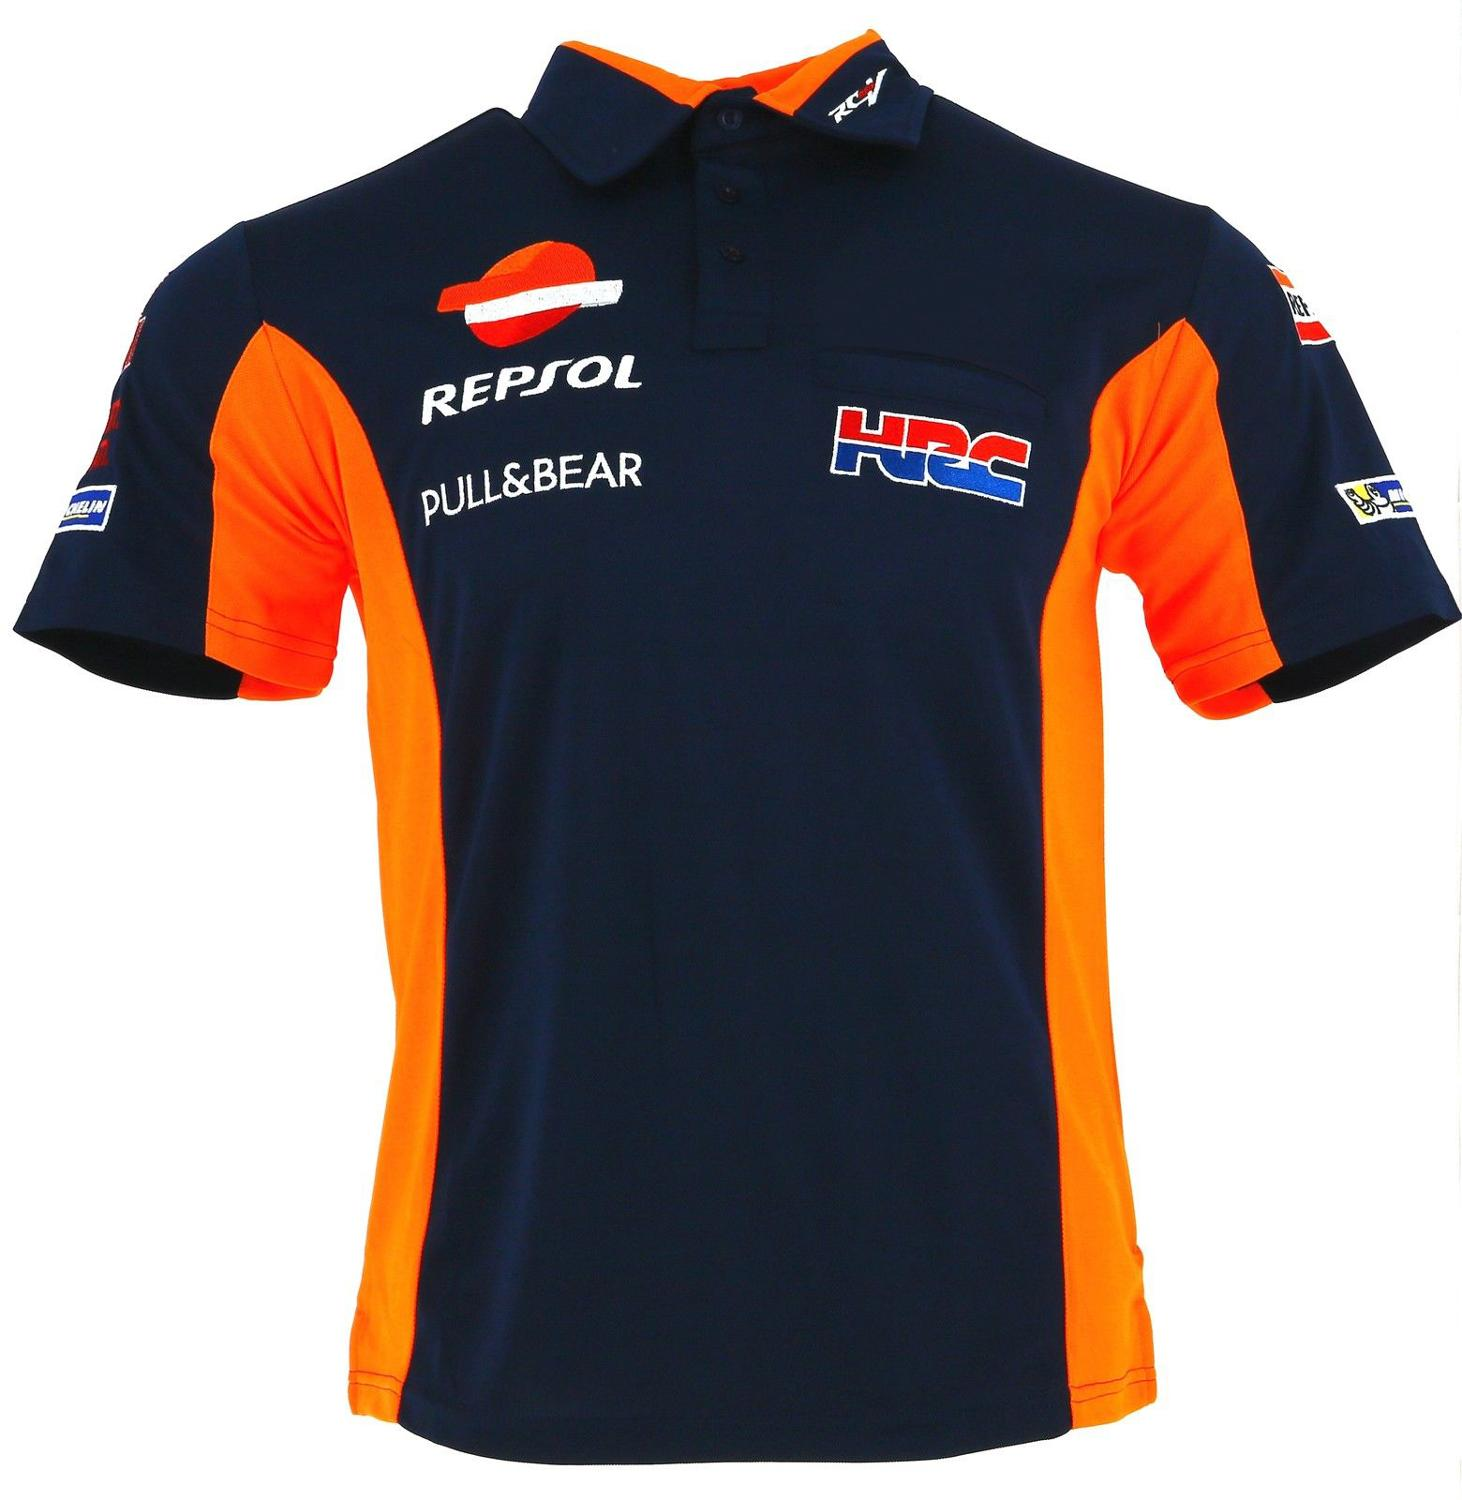 NEW-100-Cotton-Marquez-93-Repsol-HRC-Racing-Polo-For-Honda-Motorcycle-Racer-Team-Racewear-T